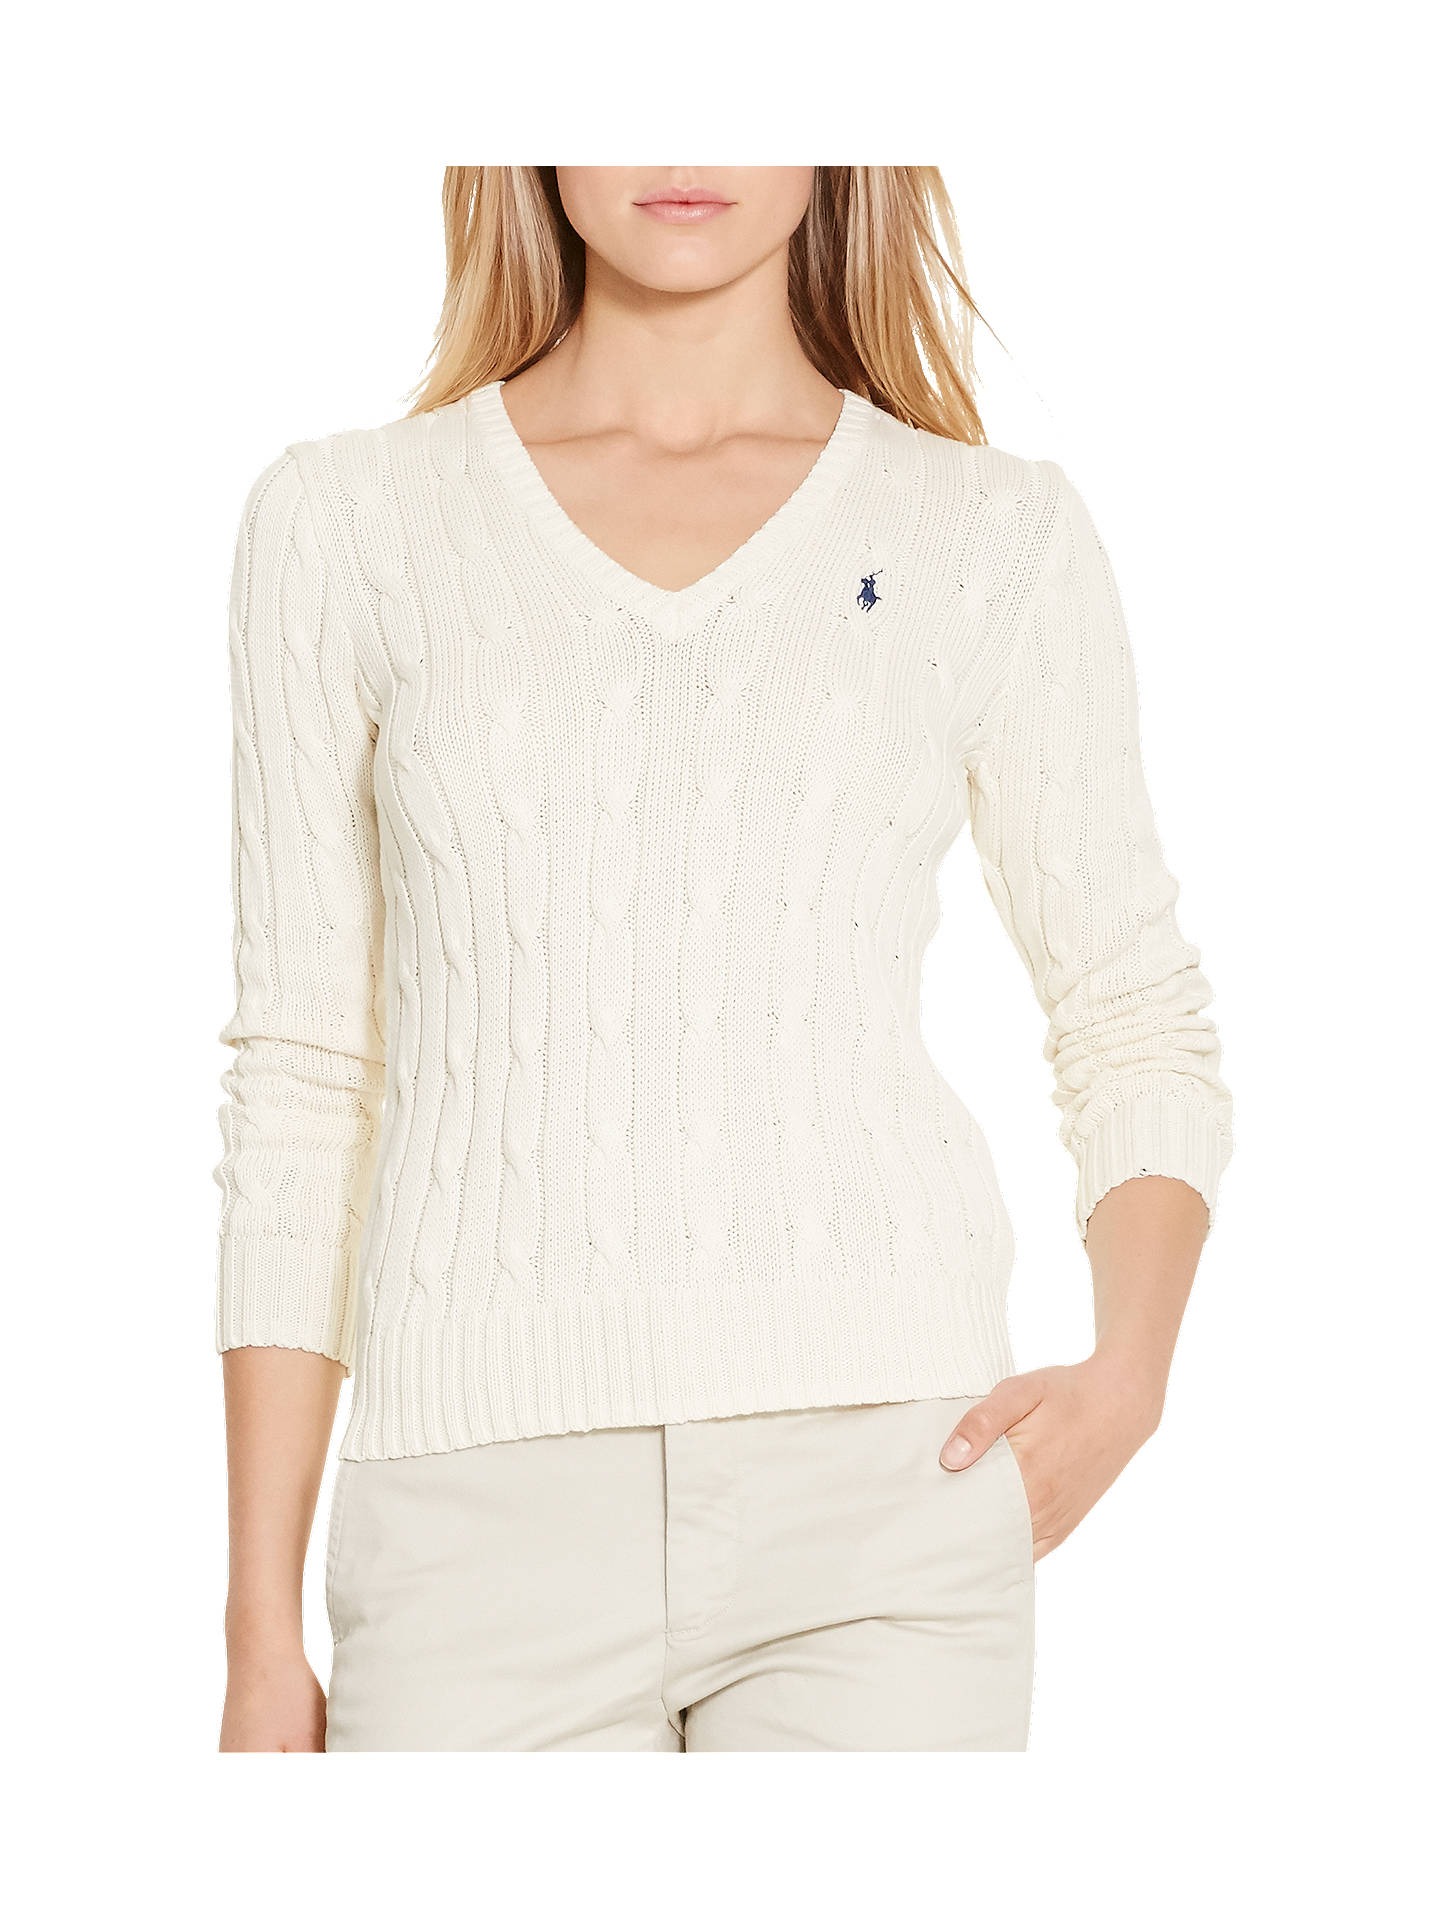 82a3aa7a53e1 Polo Ralph Lauren V-Neck Cable Knit Jumper at John Lewis   Partners